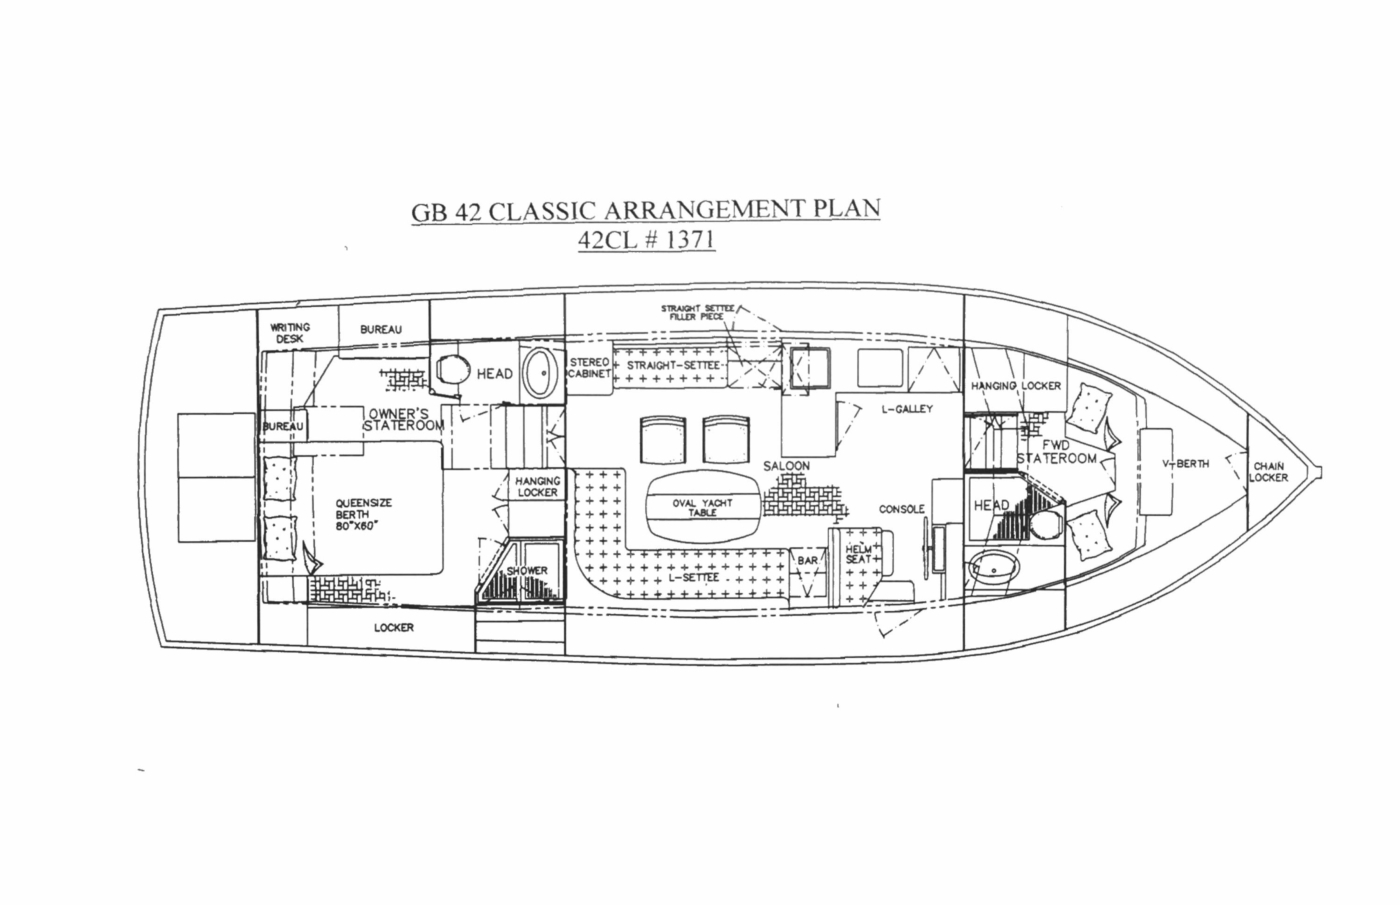 1998 Grand Banks 42 Classic, Layout Plan